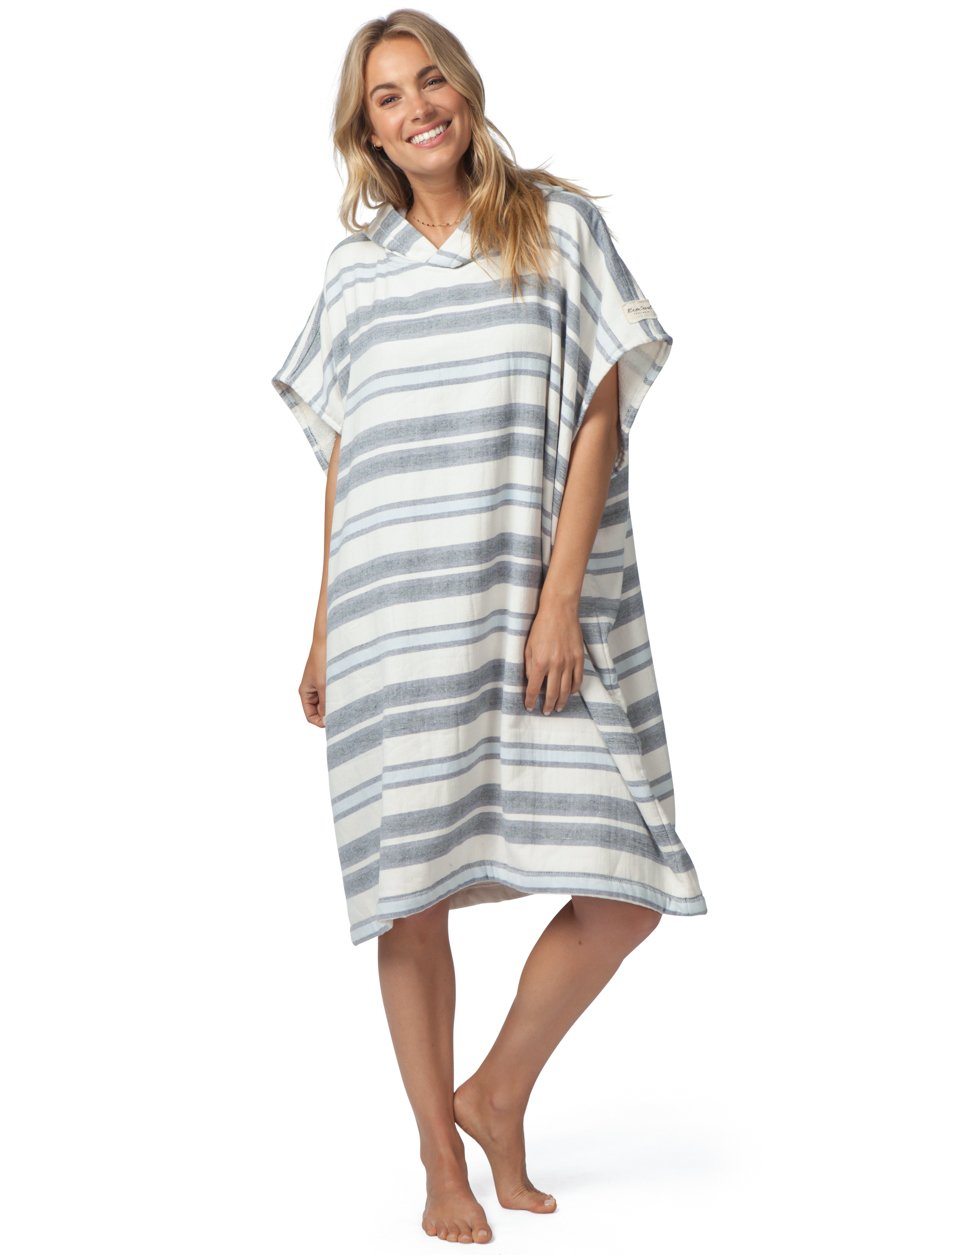 Rip Curl Surf Stripe Hooded Towel